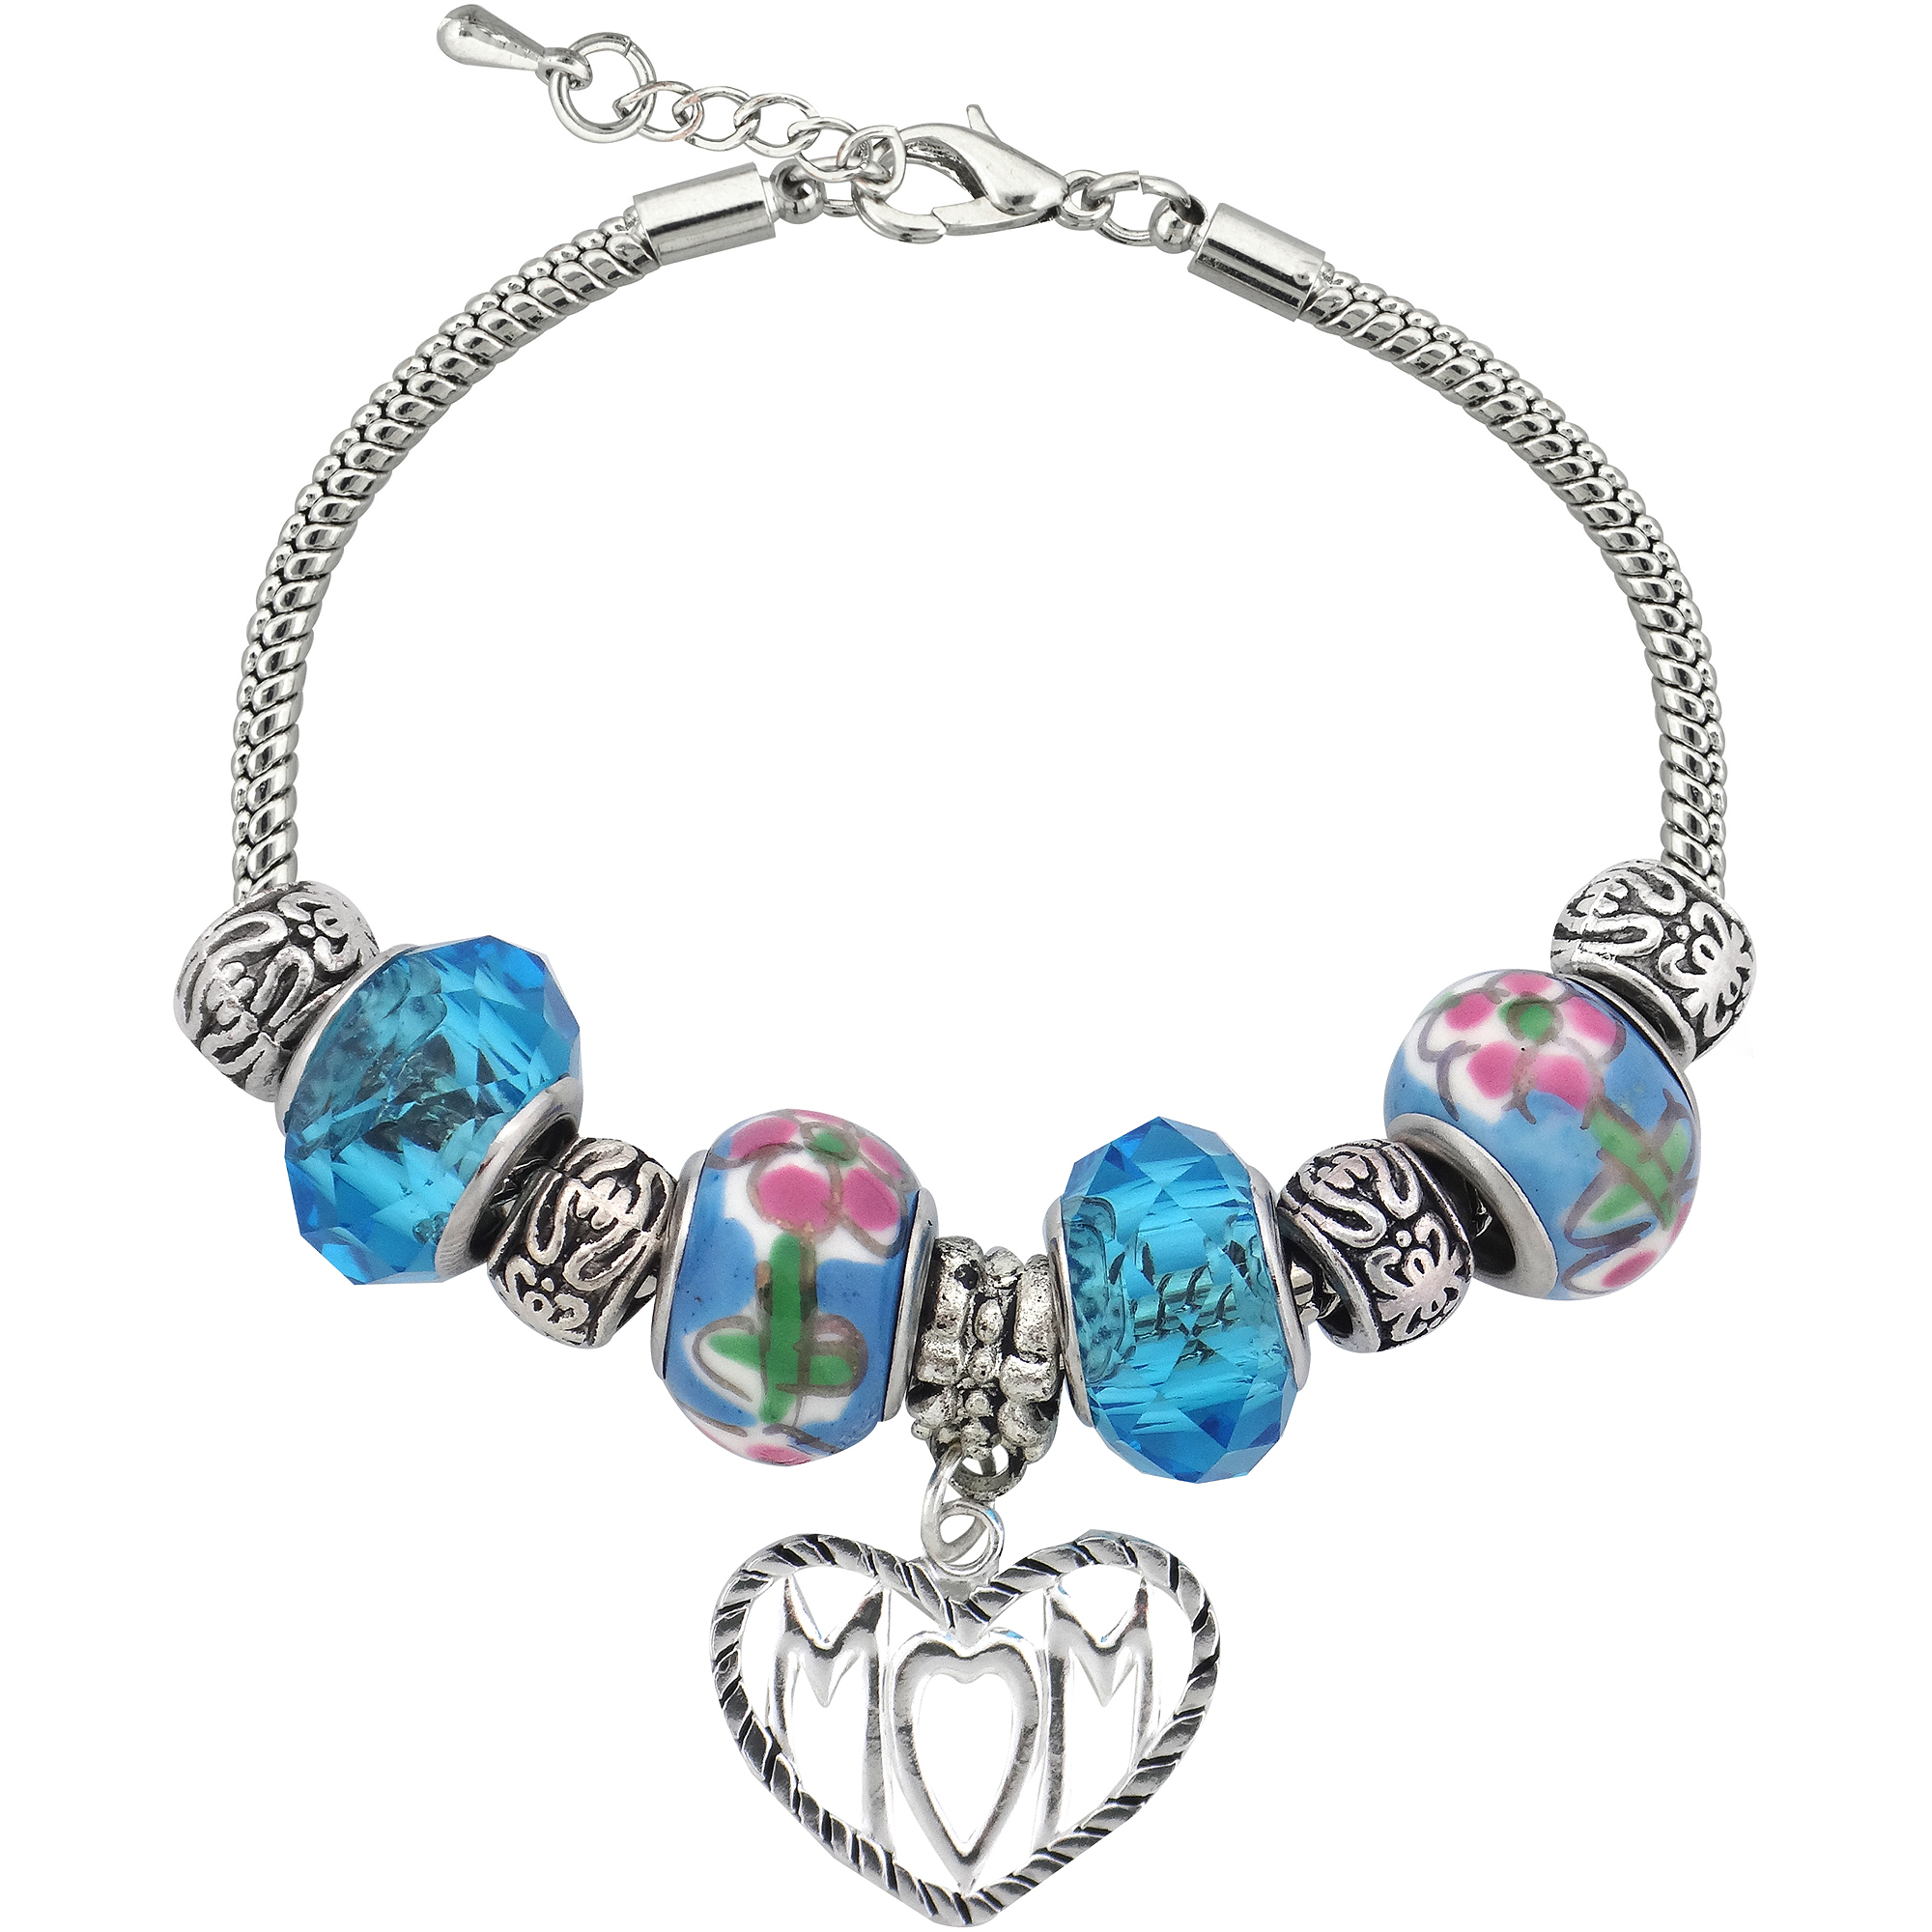 Silvertone Mom Charm and Glass Beads Bracelet with Extender, 7.5